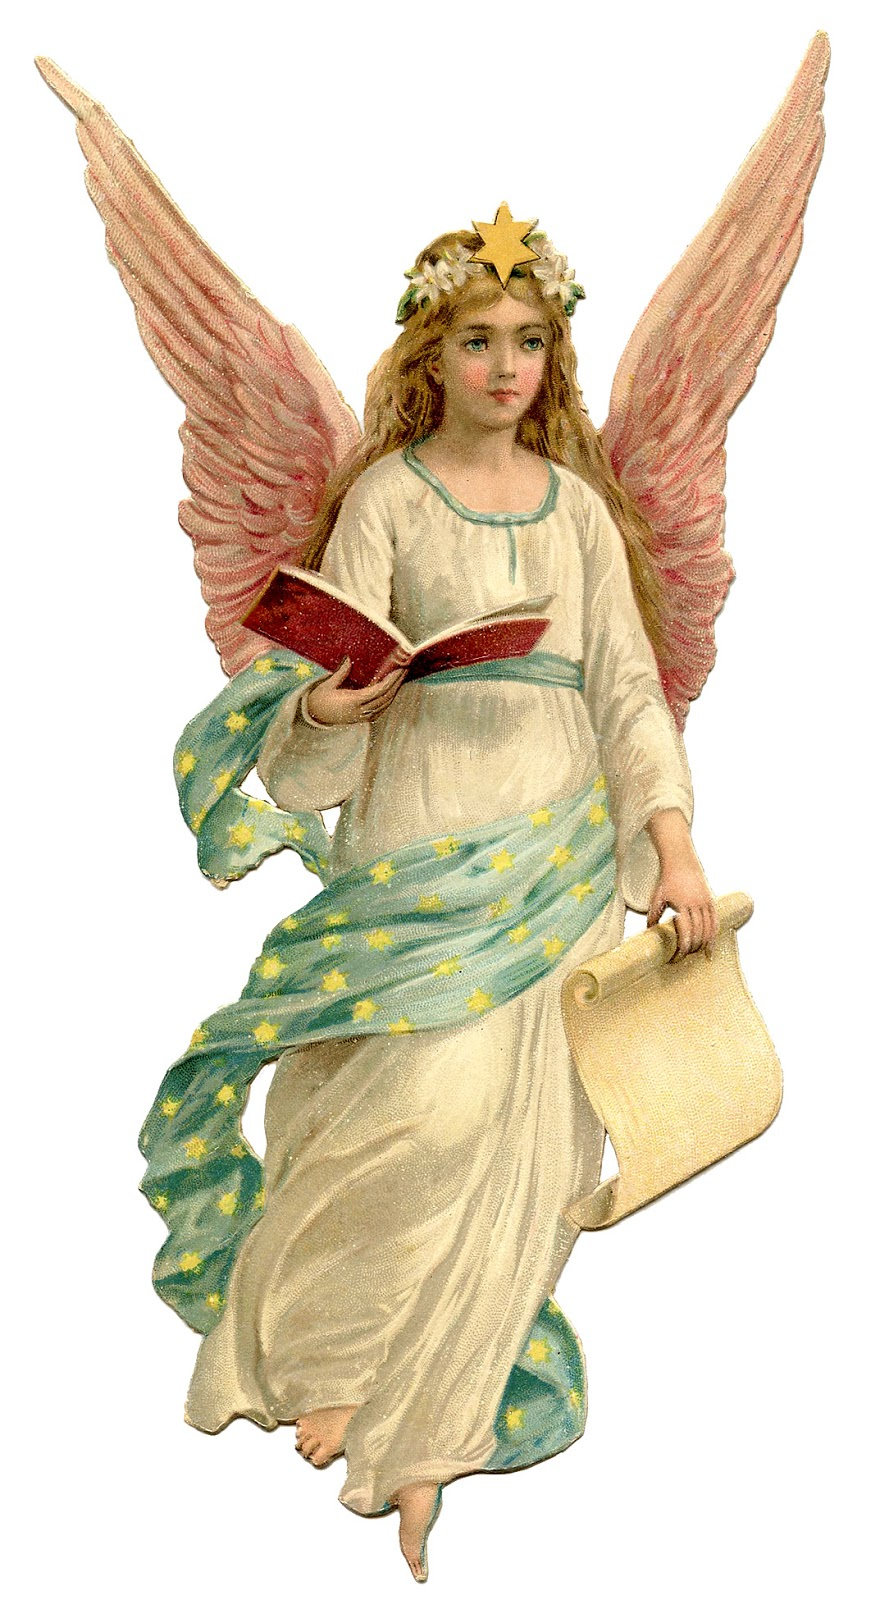 Vintage Christmas Image - Beautiful Angel - The Graphics Fairy